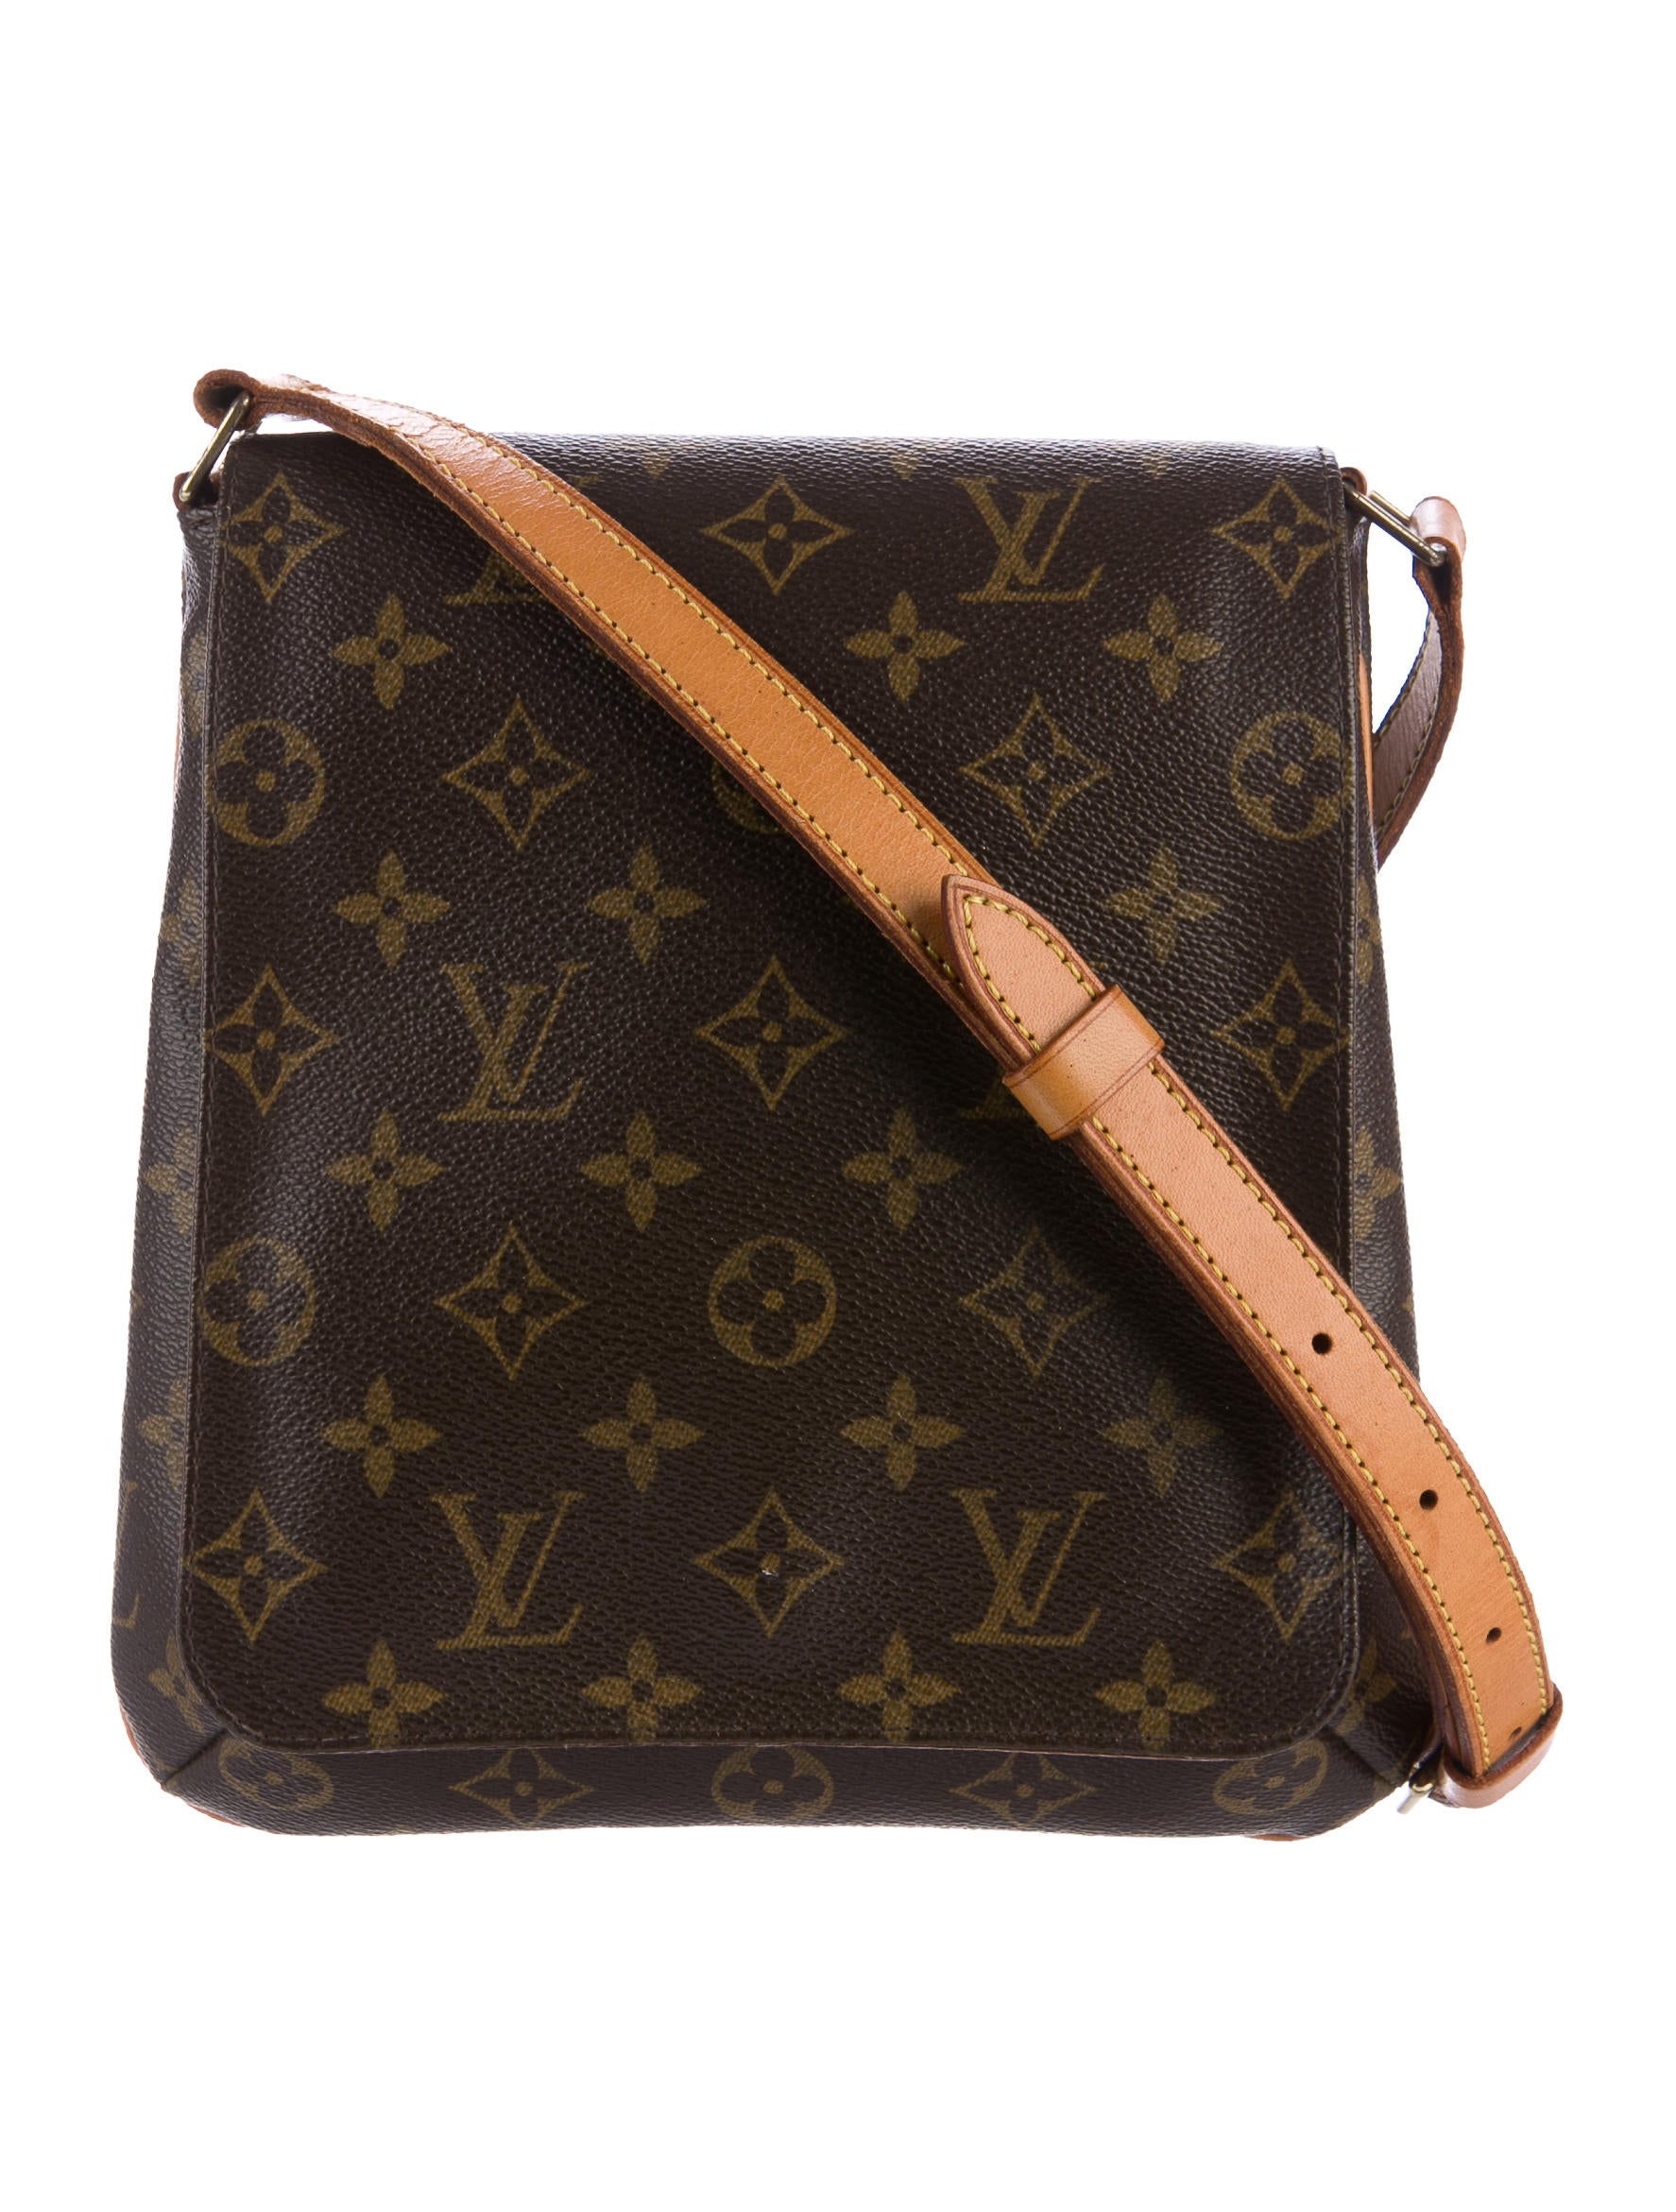 louis vuitton monogram musette salsa pm handbags lou138004 the realreal. Black Bedroom Furniture Sets. Home Design Ideas